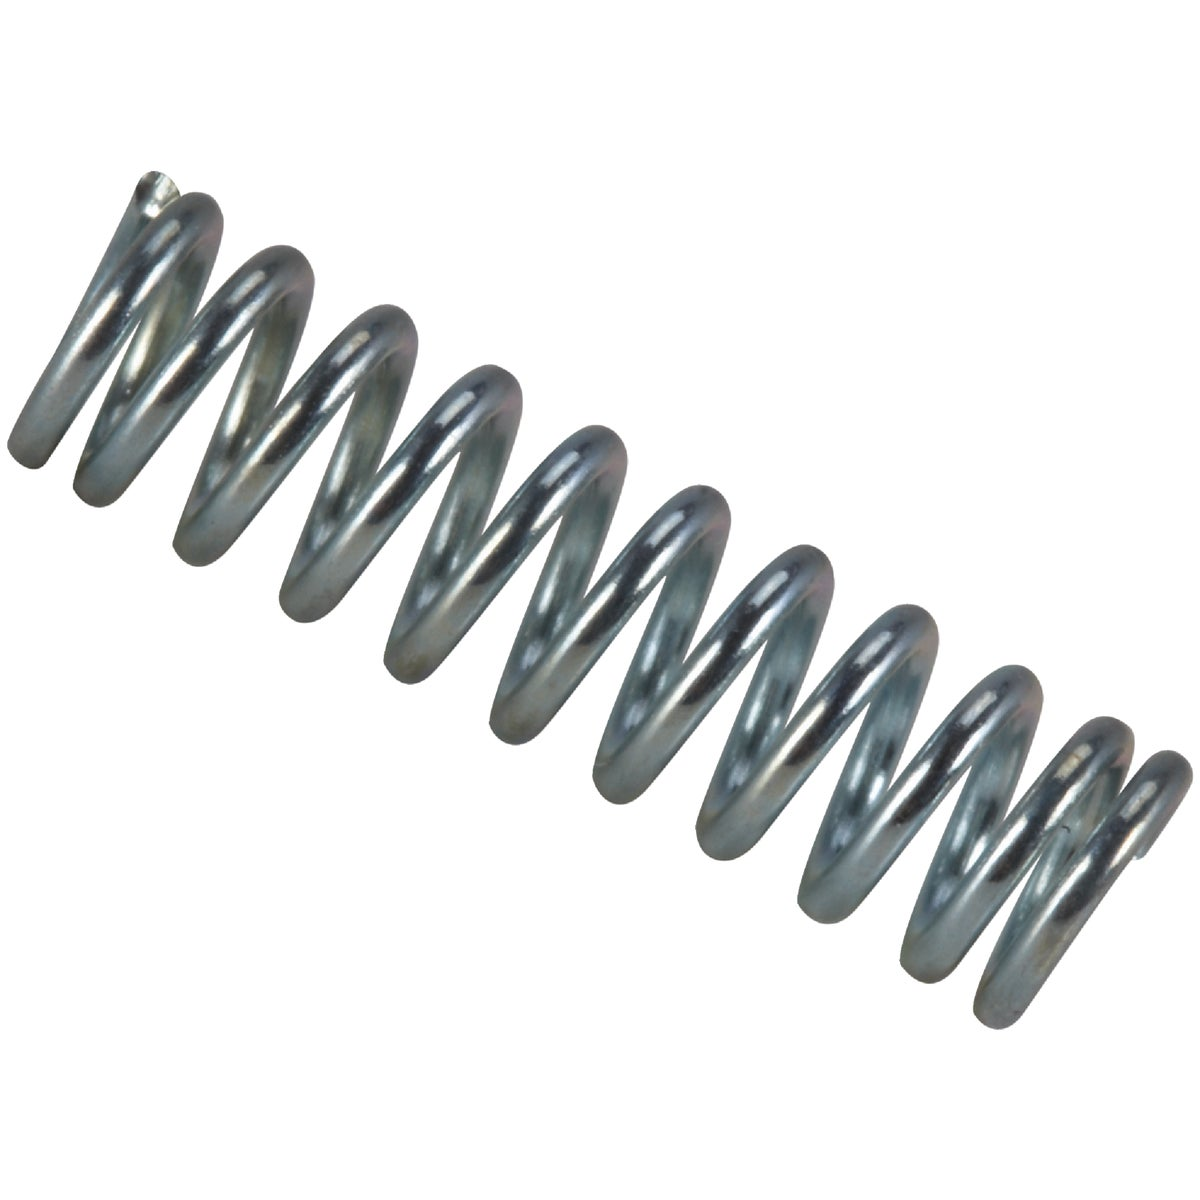 COMPRESSION SPRING - C-742 by Century Spring Corp